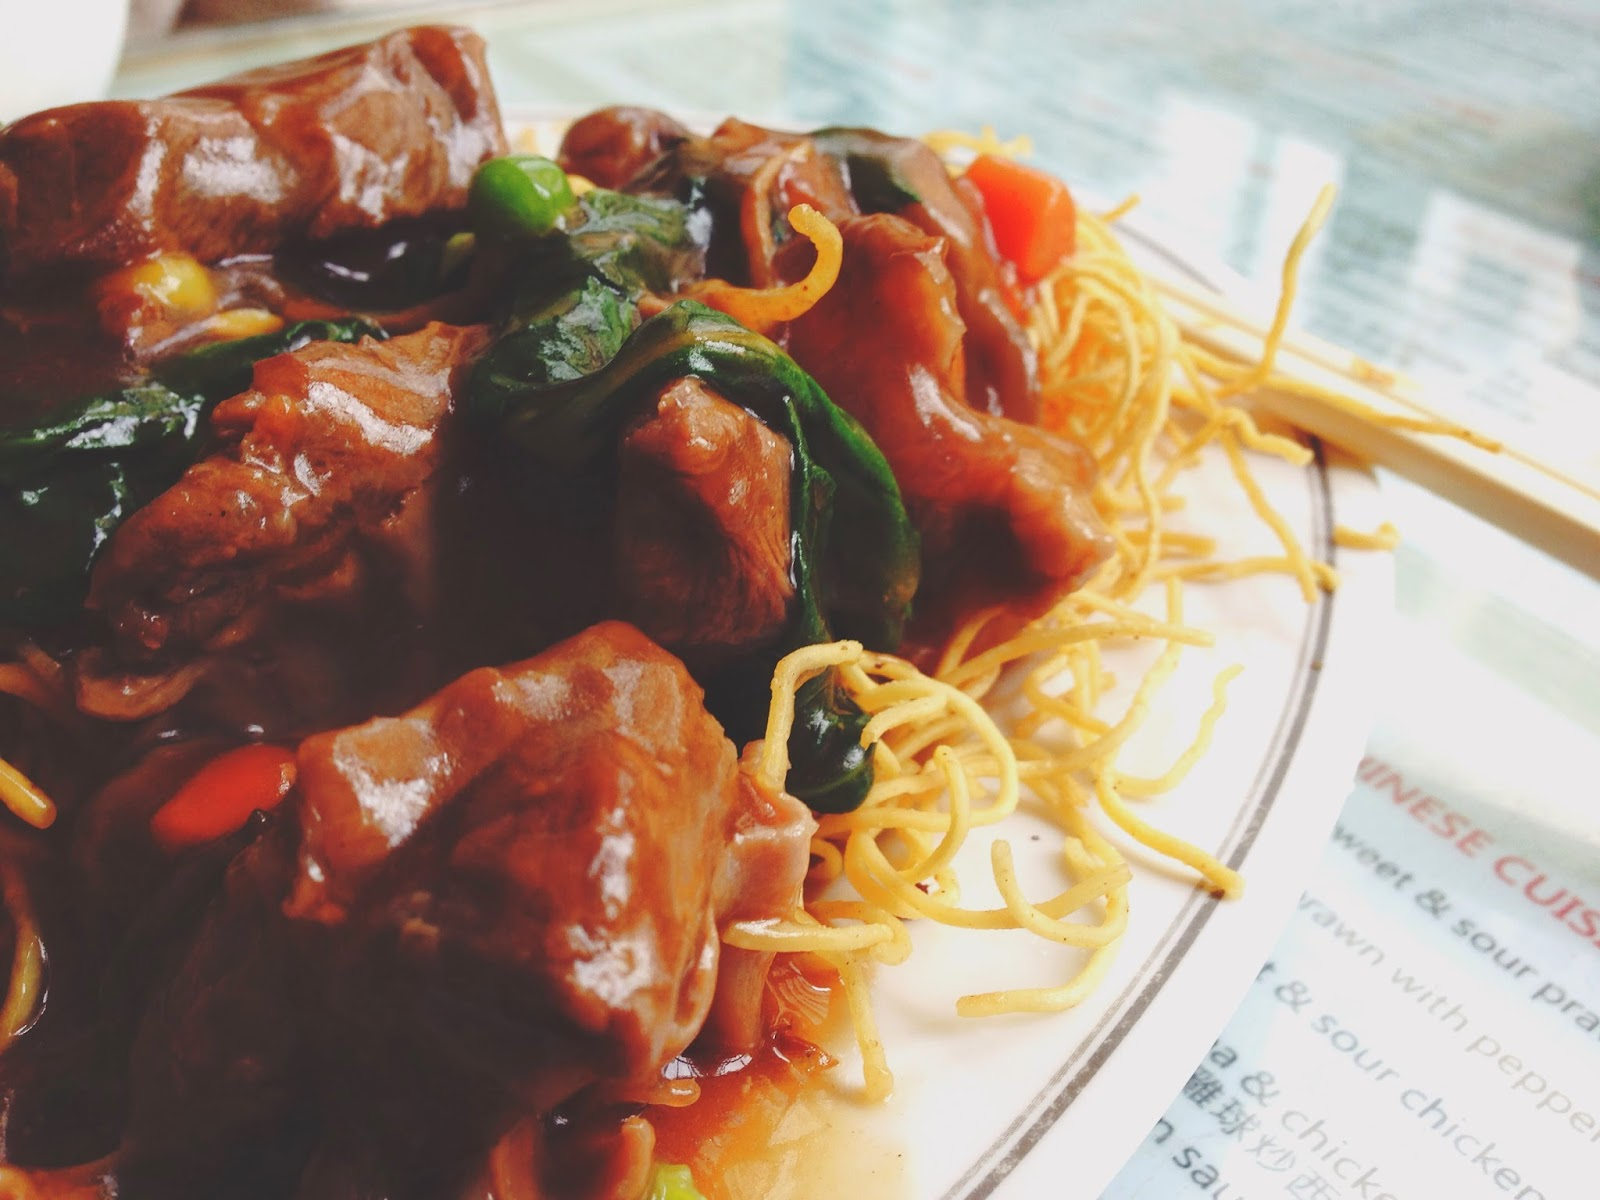 Mido Cafe Hong Kong Crispy Noodles with Stewed Beef